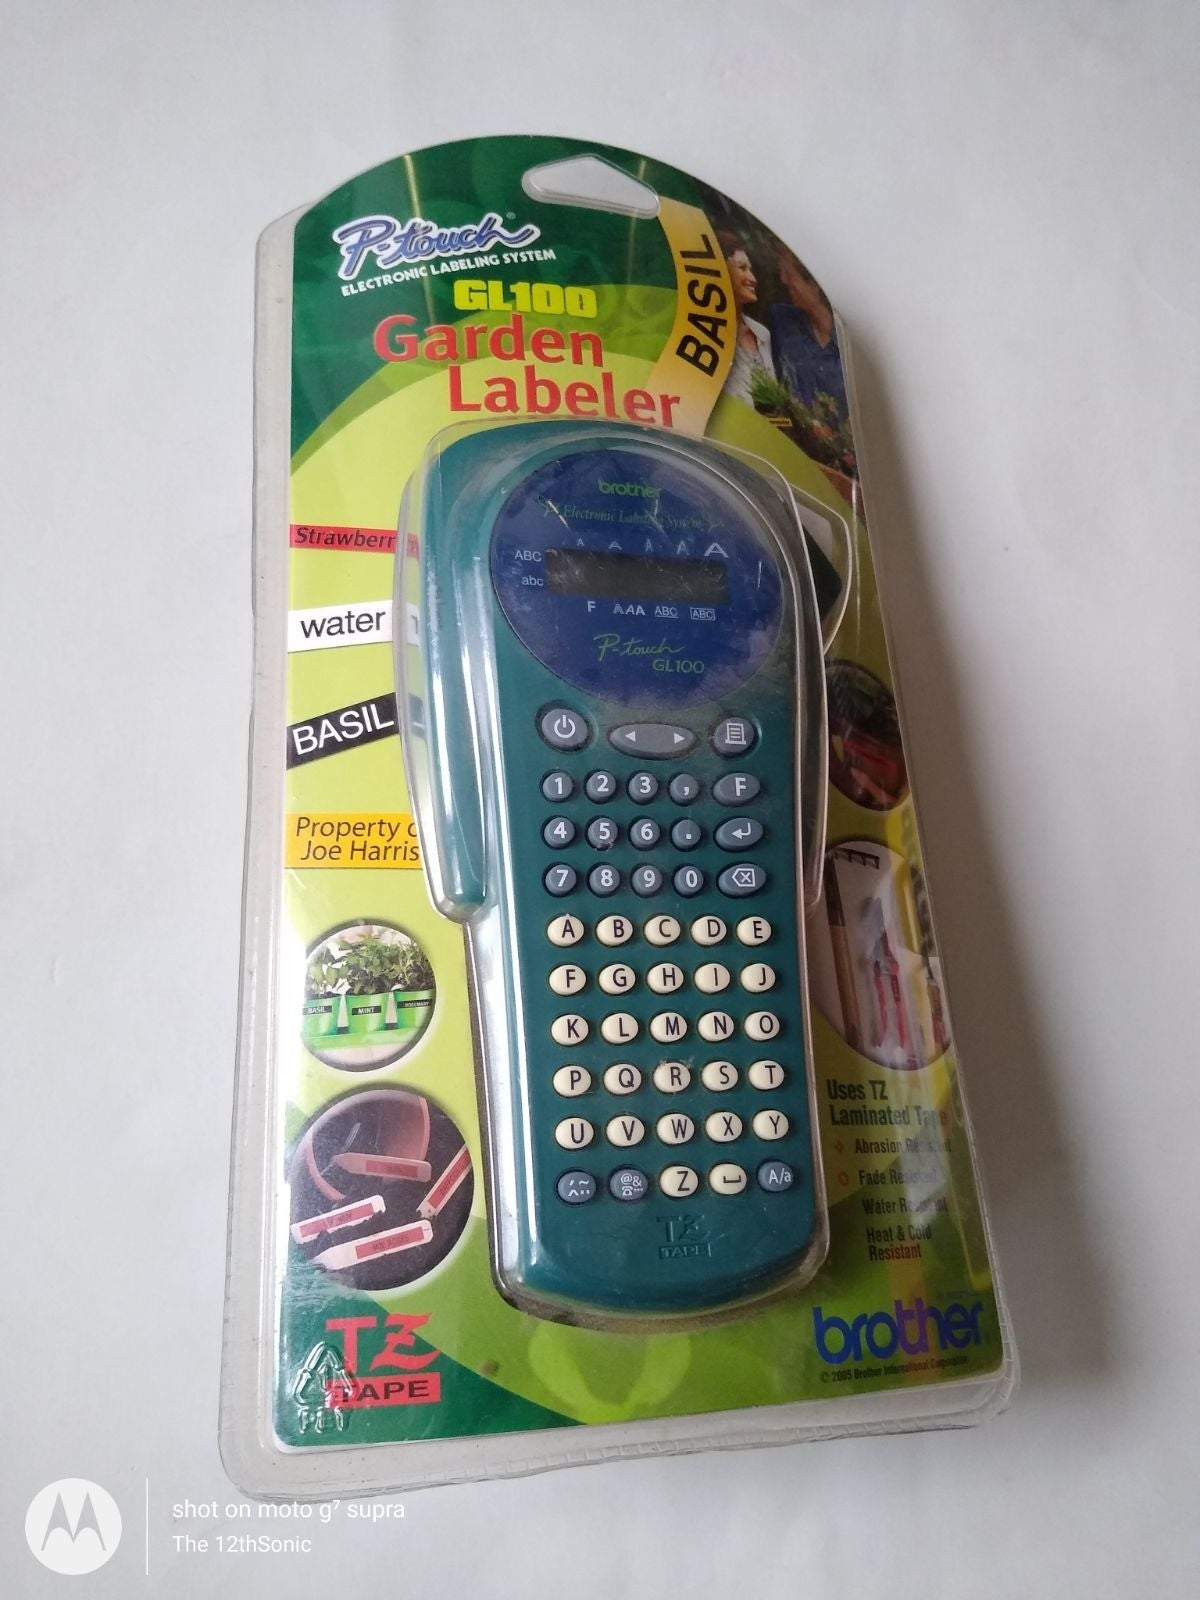 New P-Touch GL100 Garden Labeler Brother